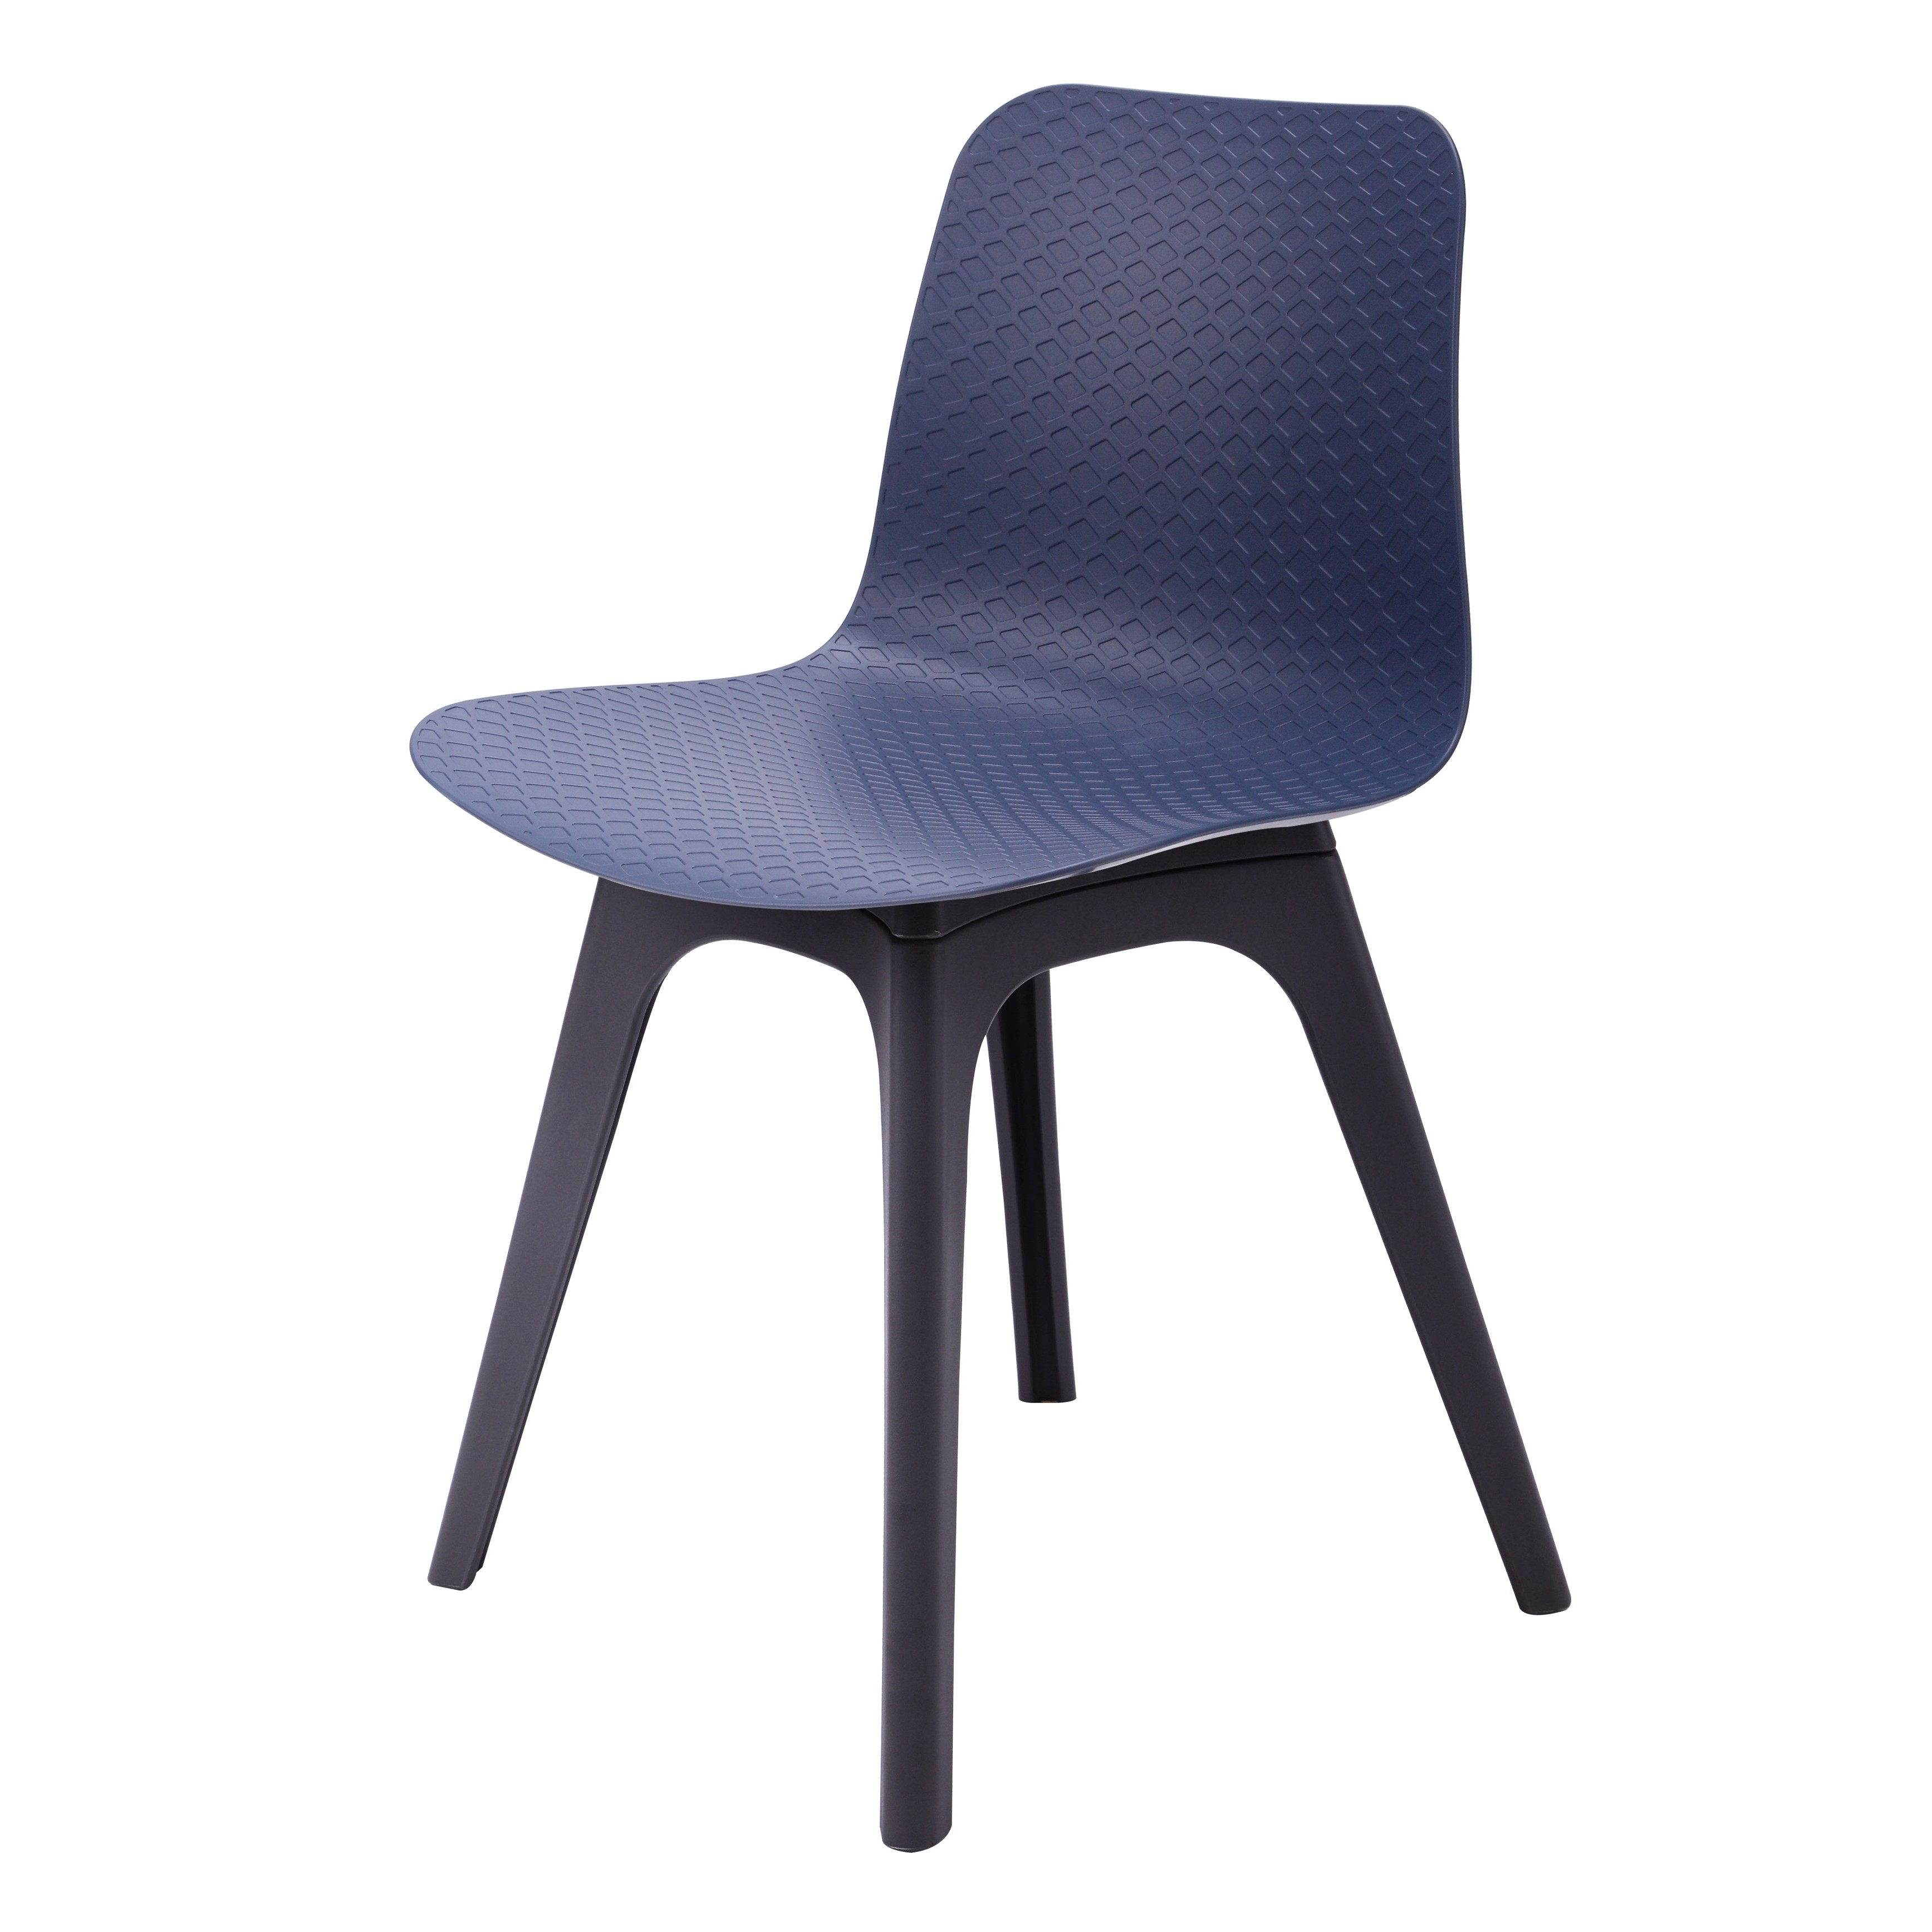 Series Navy Dining Shell Side Chair Molded Plastic Black Legs